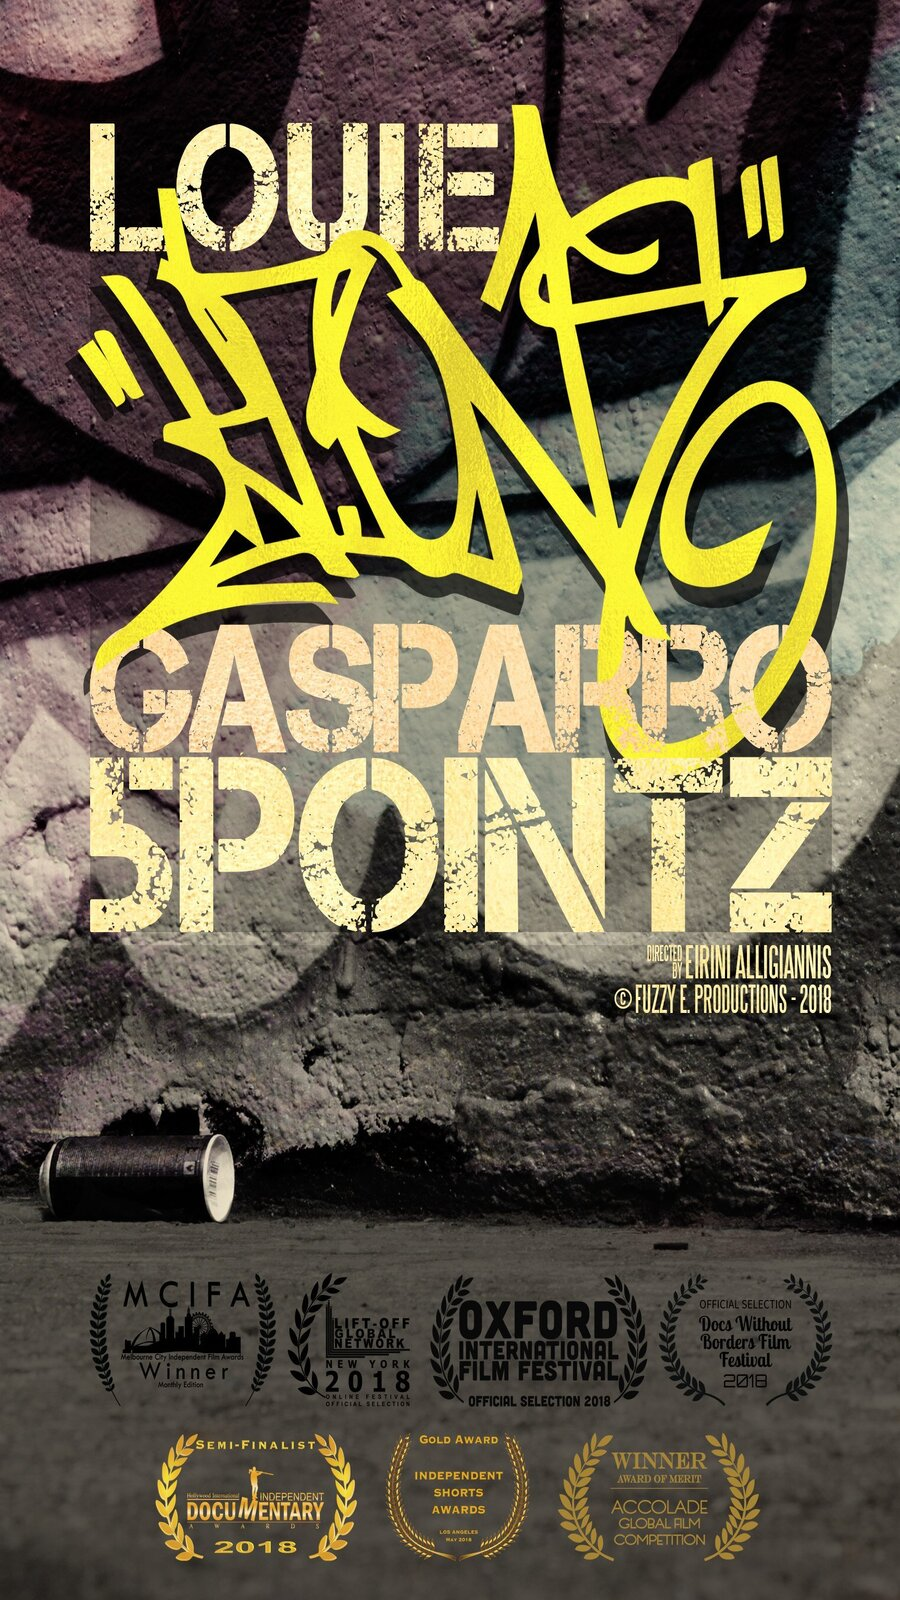 'Louie (KR.ONE) Gasparro 5POINTZ' is an award winning short documentary featuring Louie (KR.ONE) Gasparro. Here's what we know.